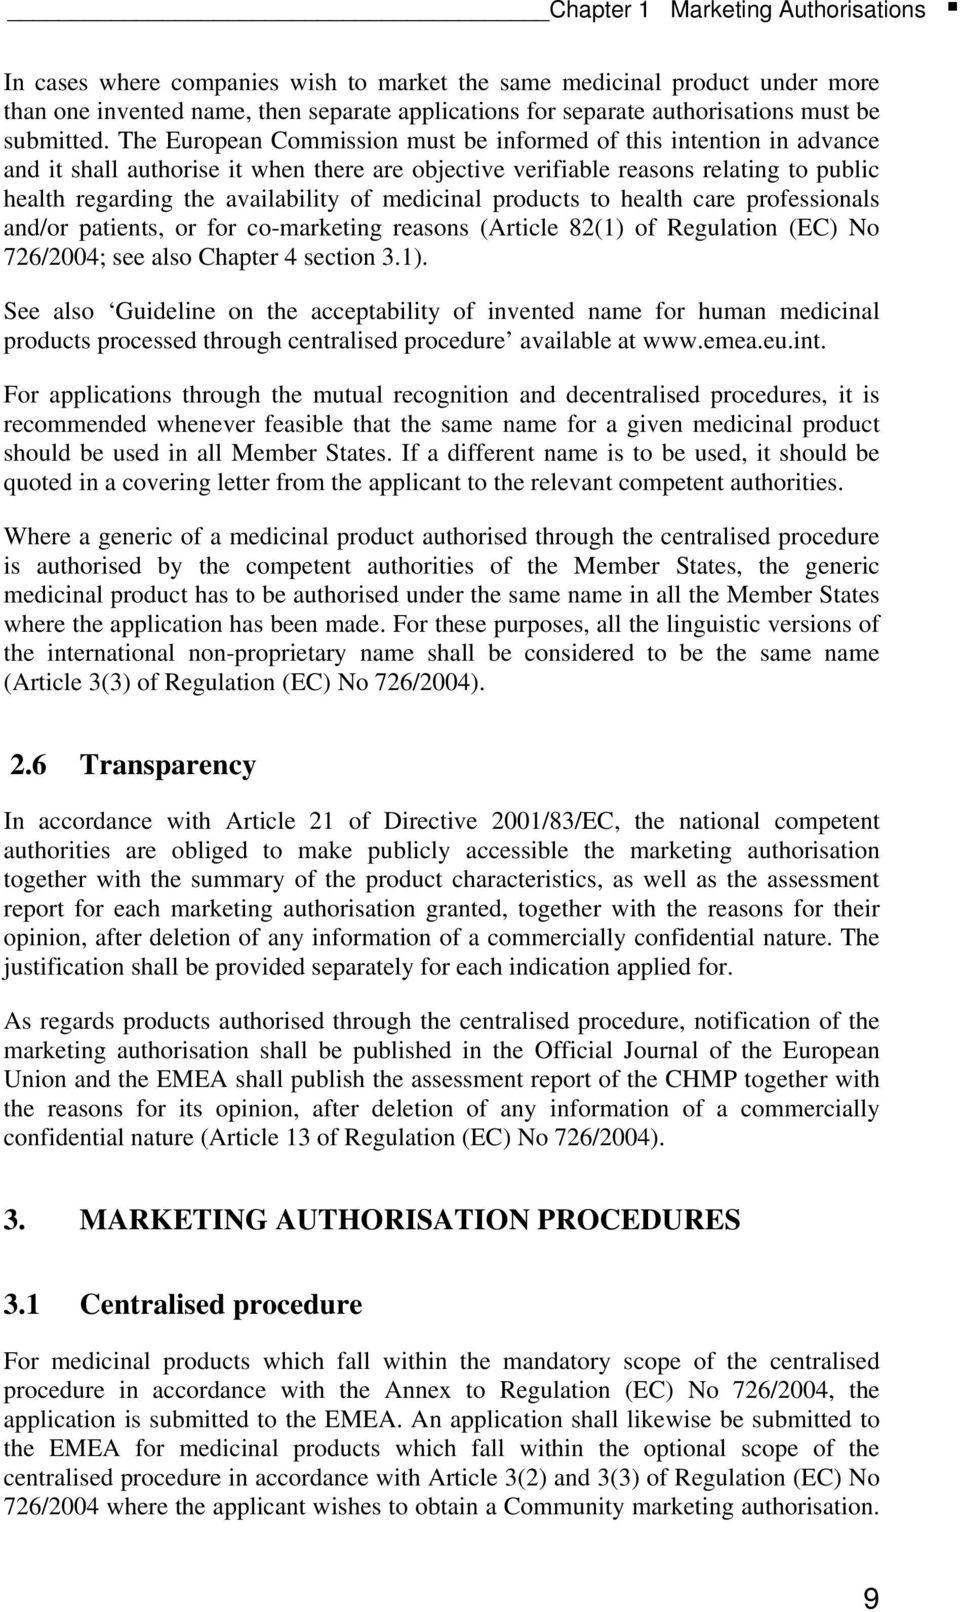 medicinal products to health care professionals and/or patients, or for co-marketing reasons (Article 82(1)